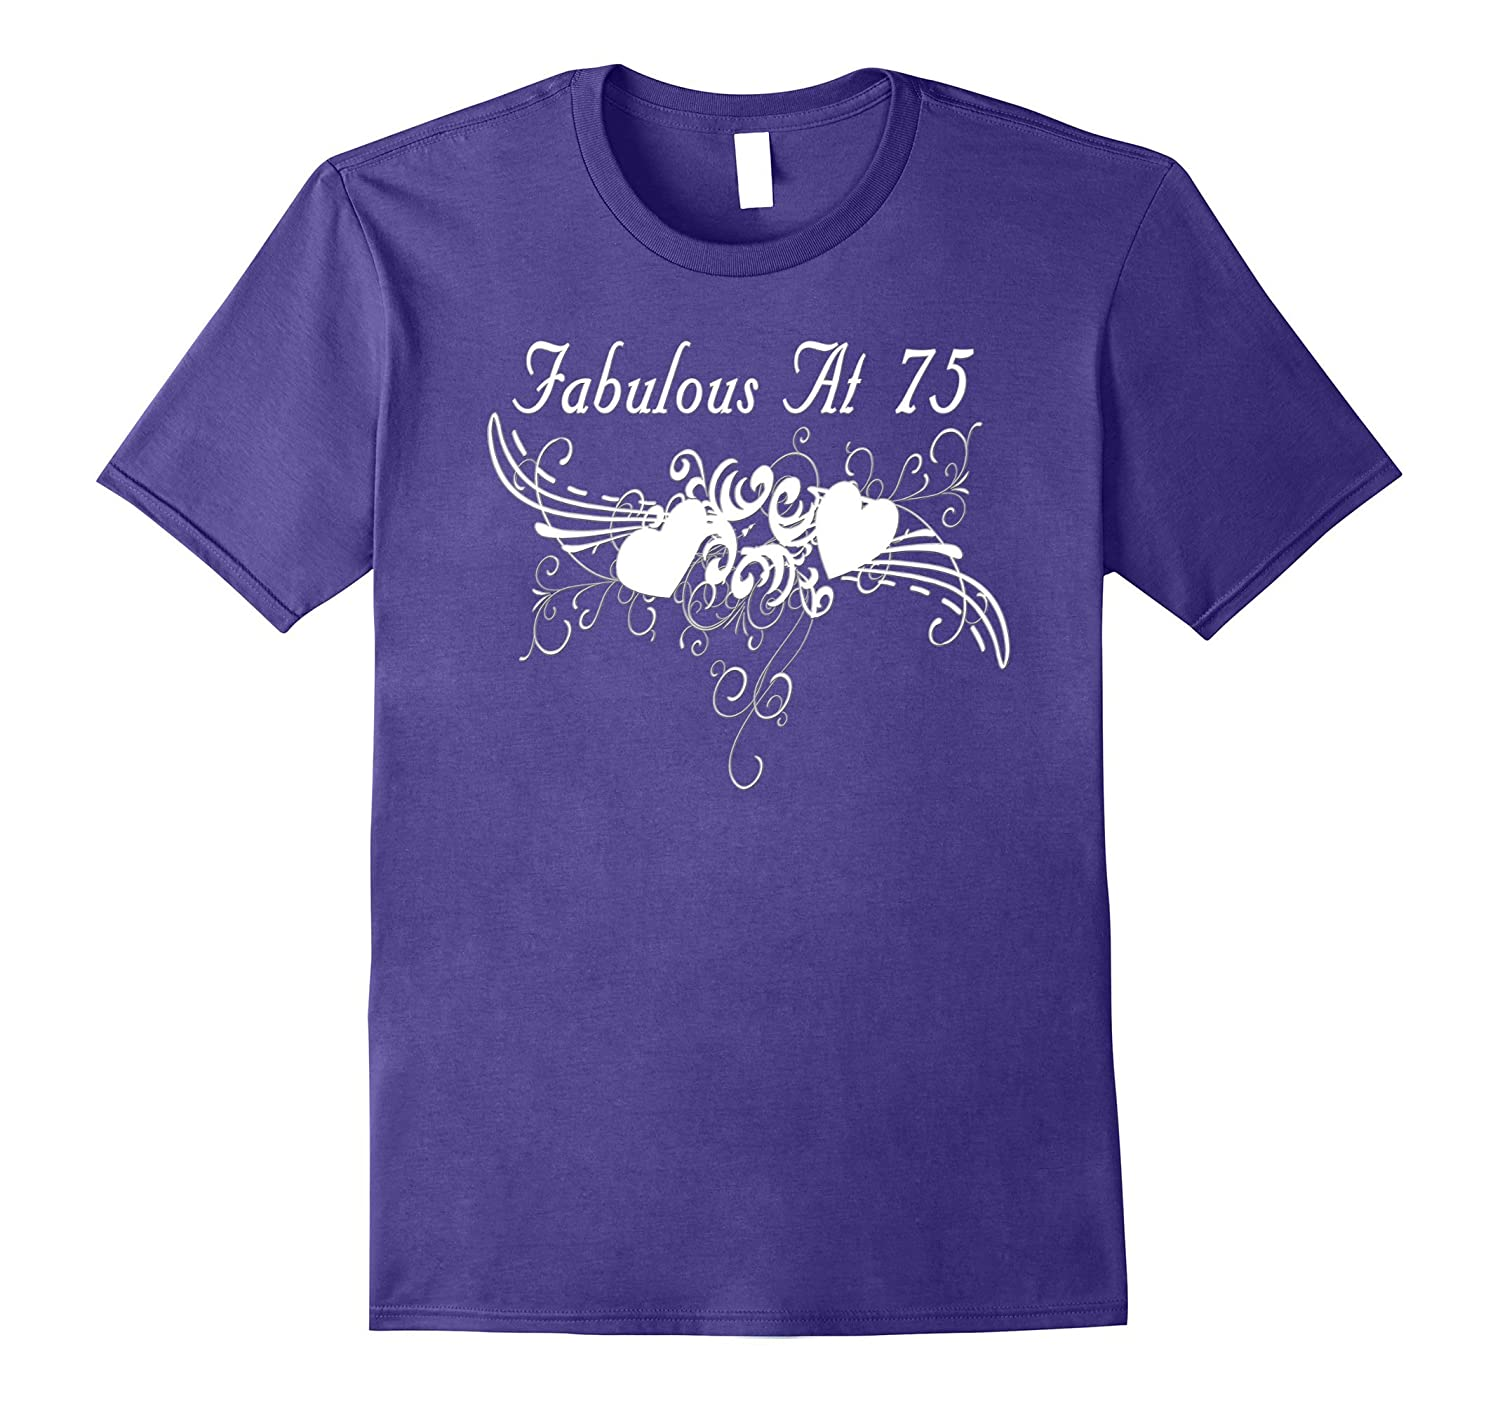 Fabulous At 75th Birthday T-shirts - 75th Birthday Gifts-FL